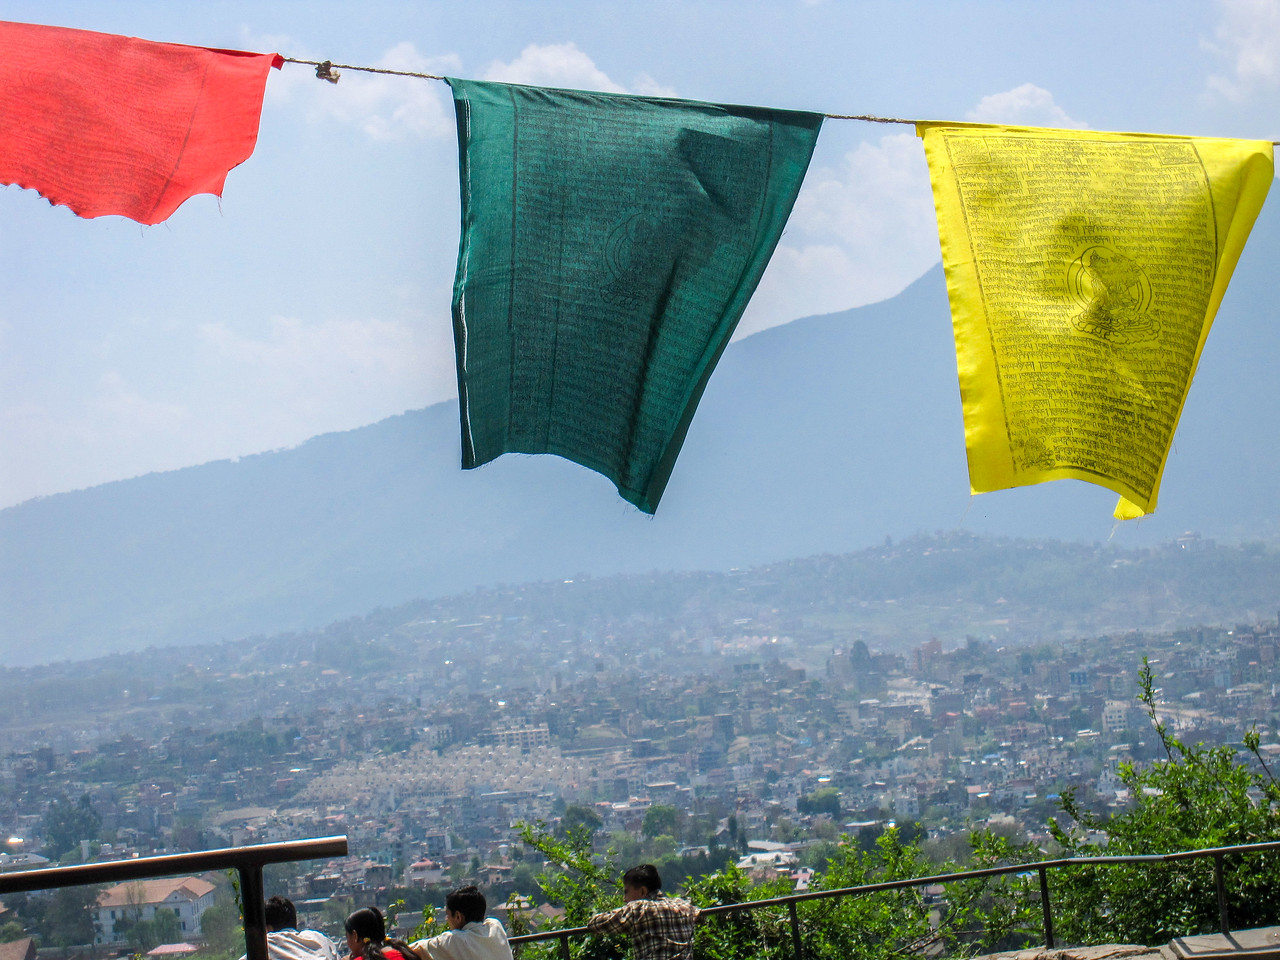 Prayer flags from the view at Swayambhunath temple